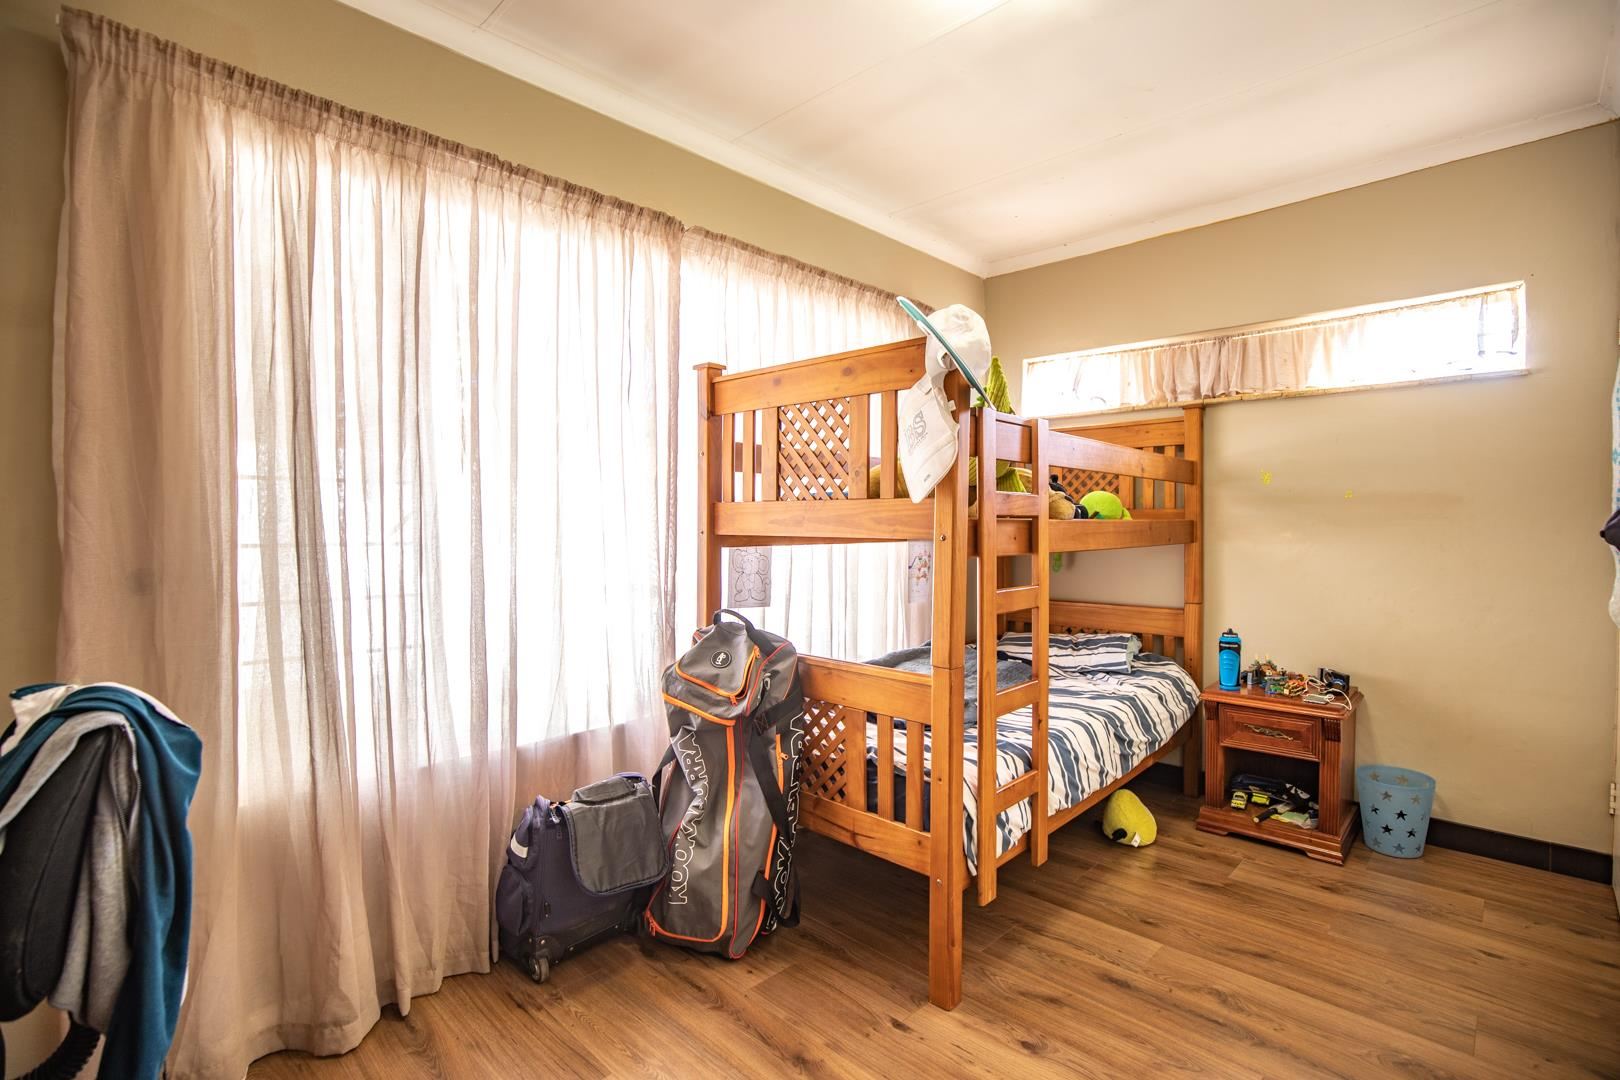 4 Bedroom House For Sale in Garsfontein